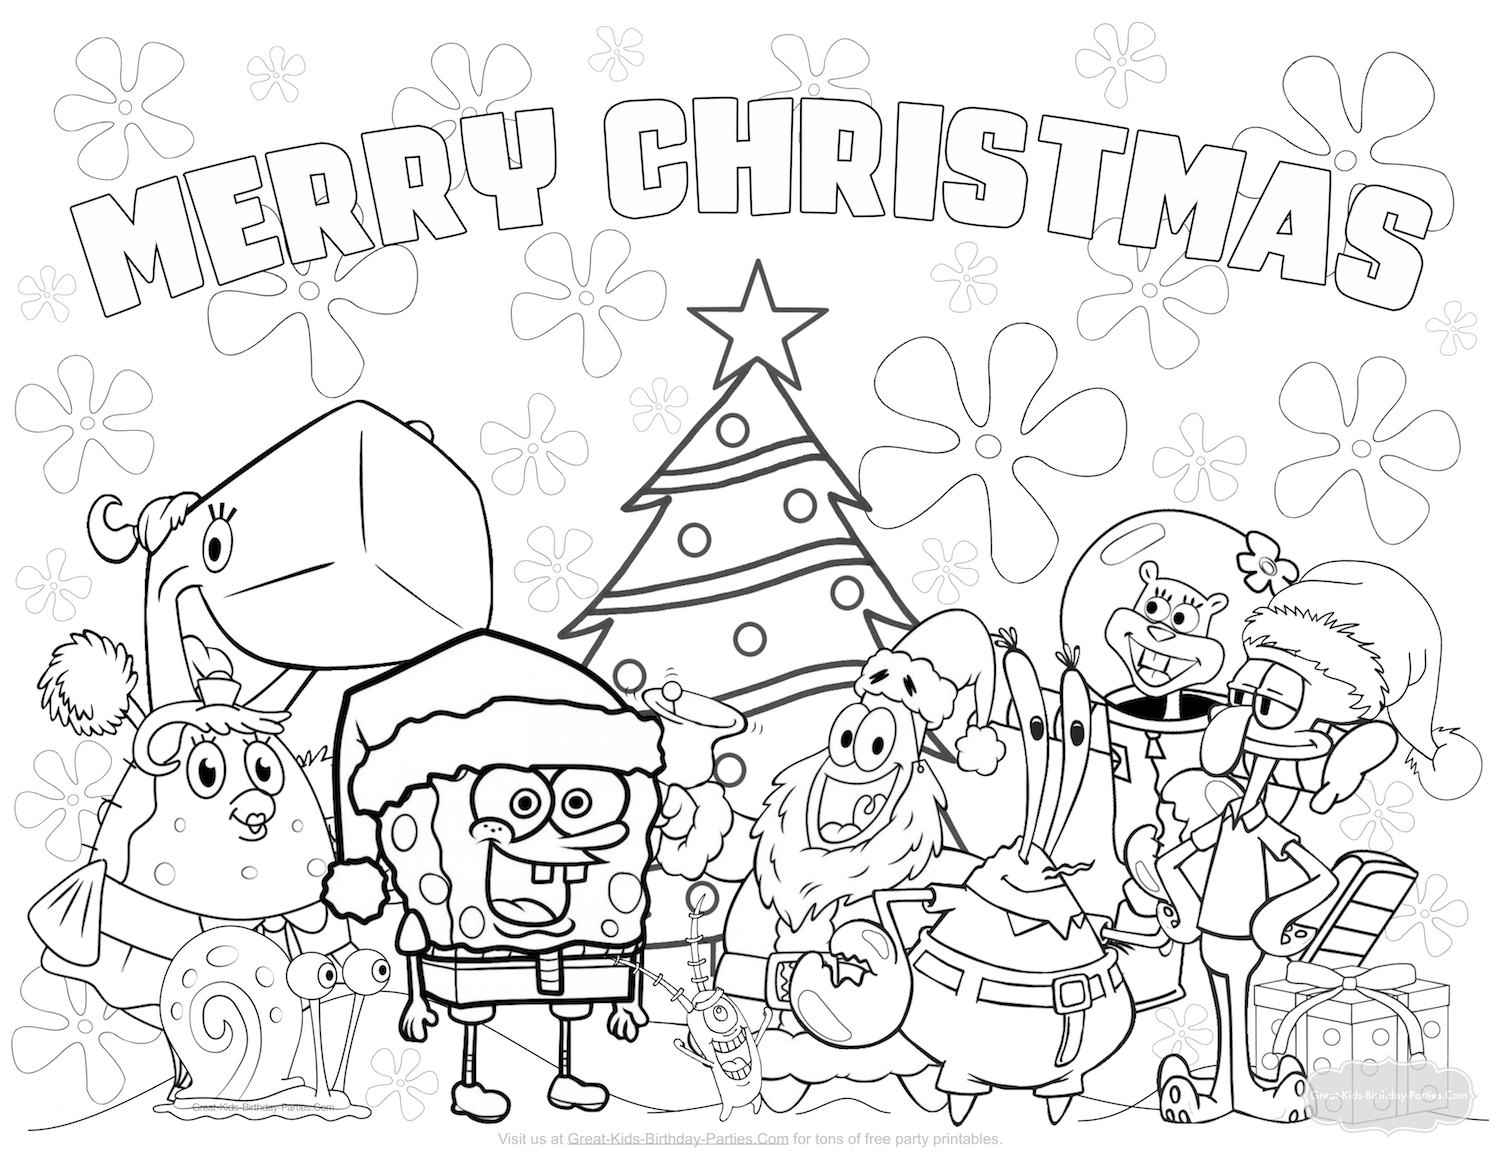 Spend Christmas With Spongebob Friends This Season Our New Coloring Page To Download Right Click And Save Your Computer